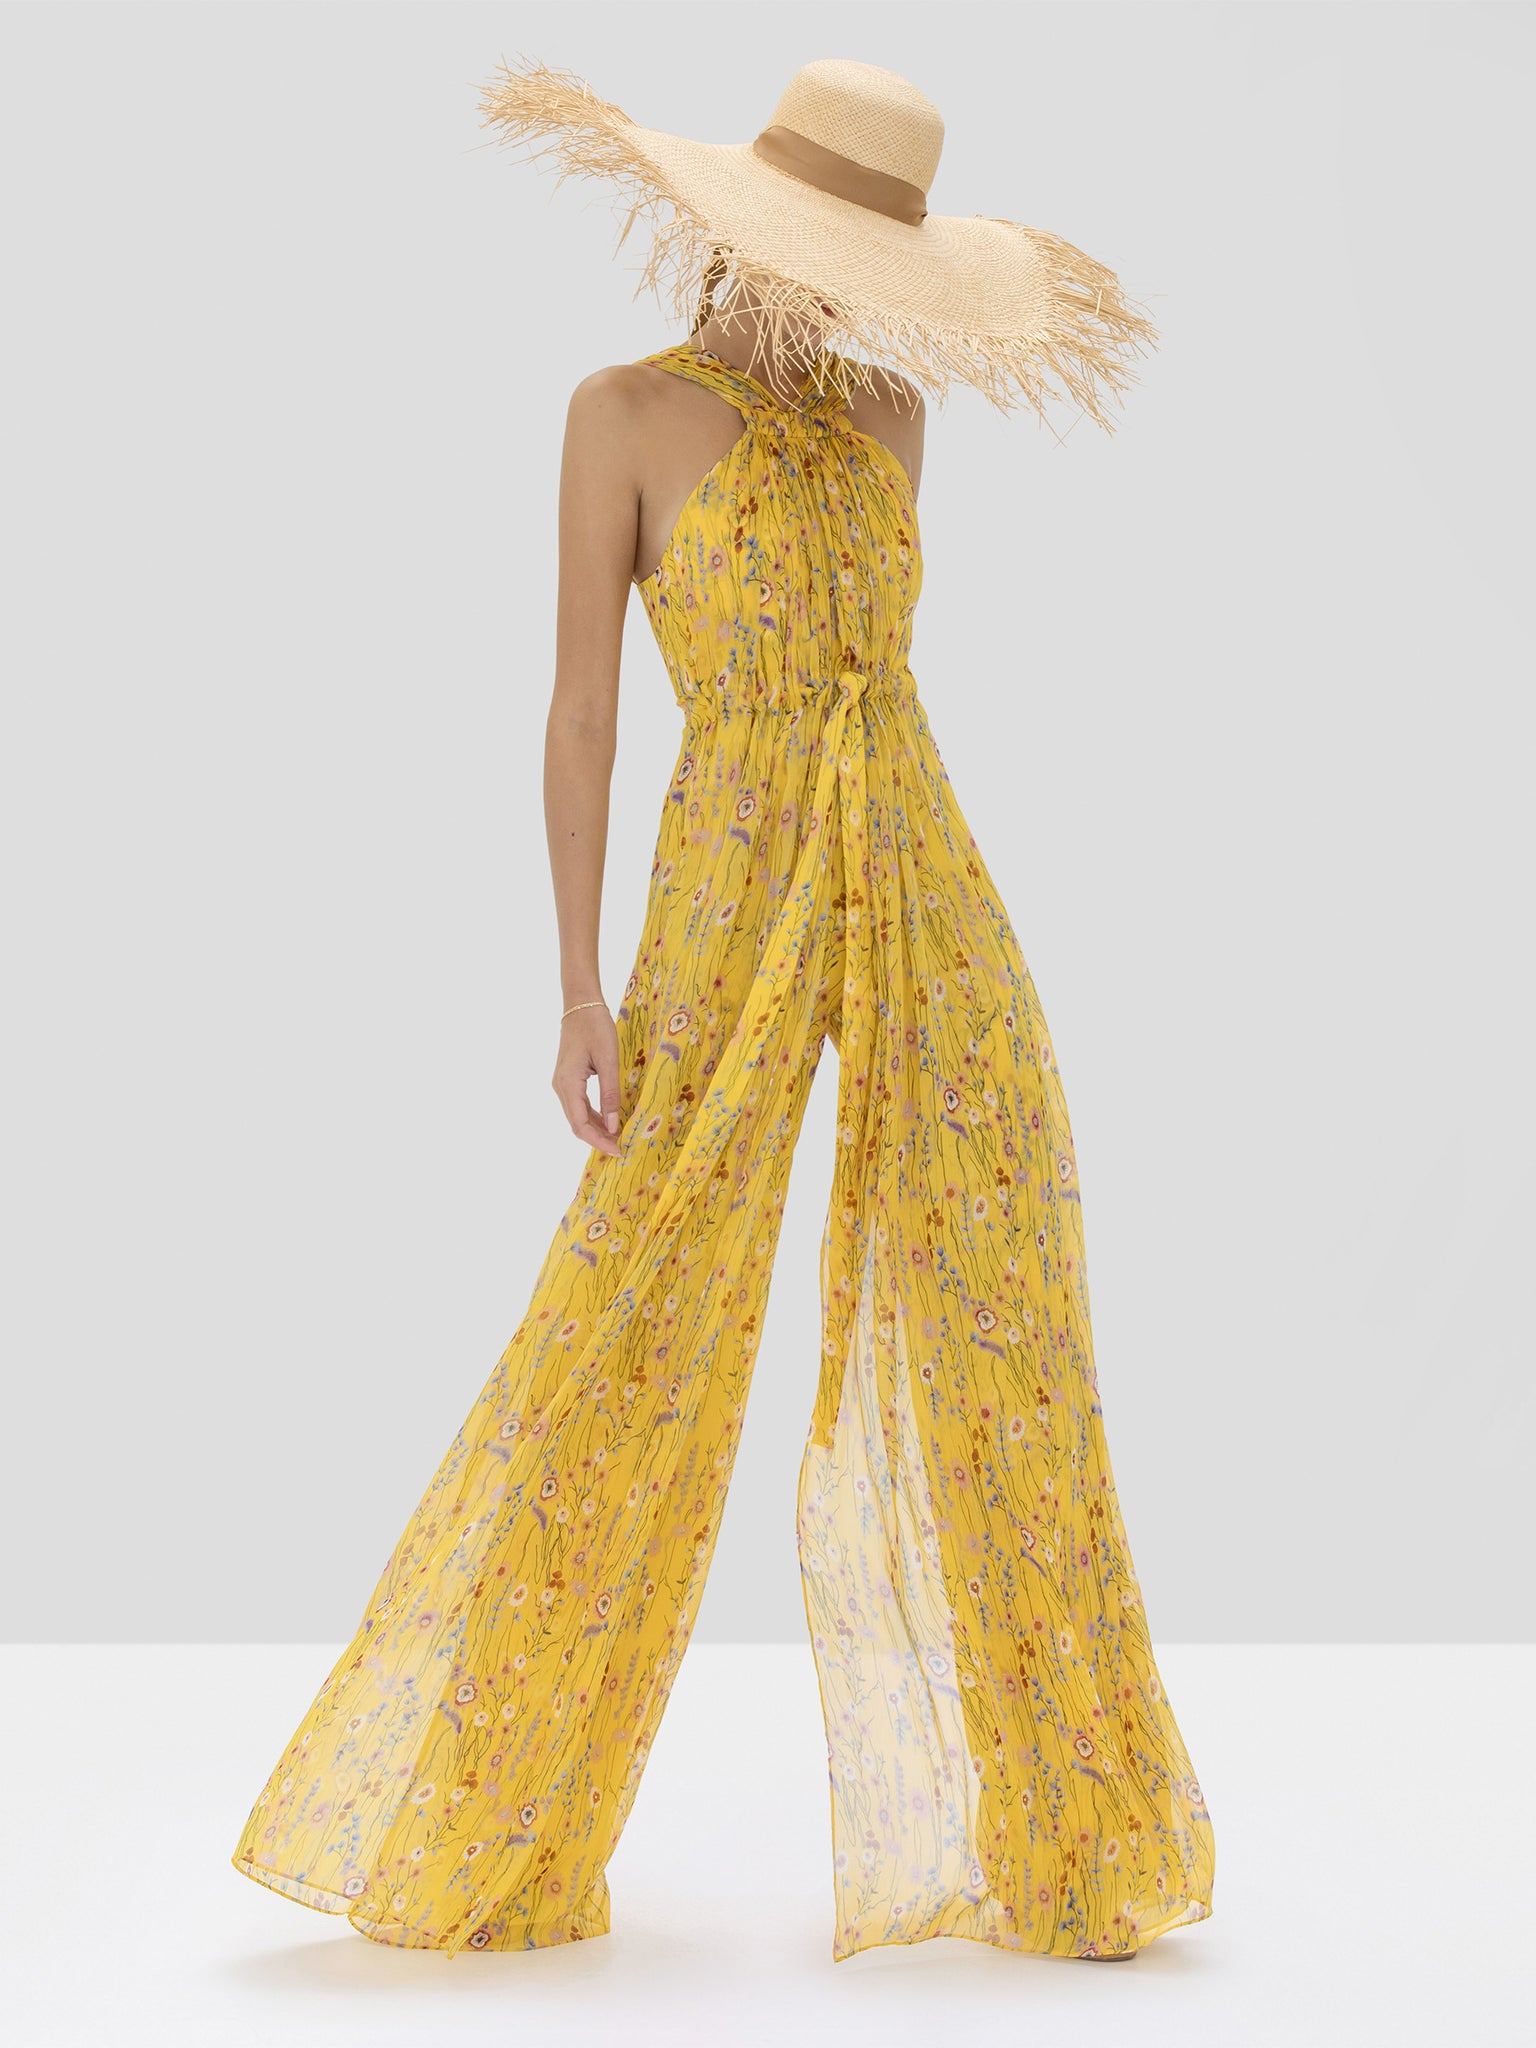 Alexis Janina Jumpsuit in Sunrise Bouquet from Spring Summer 2020 Collection